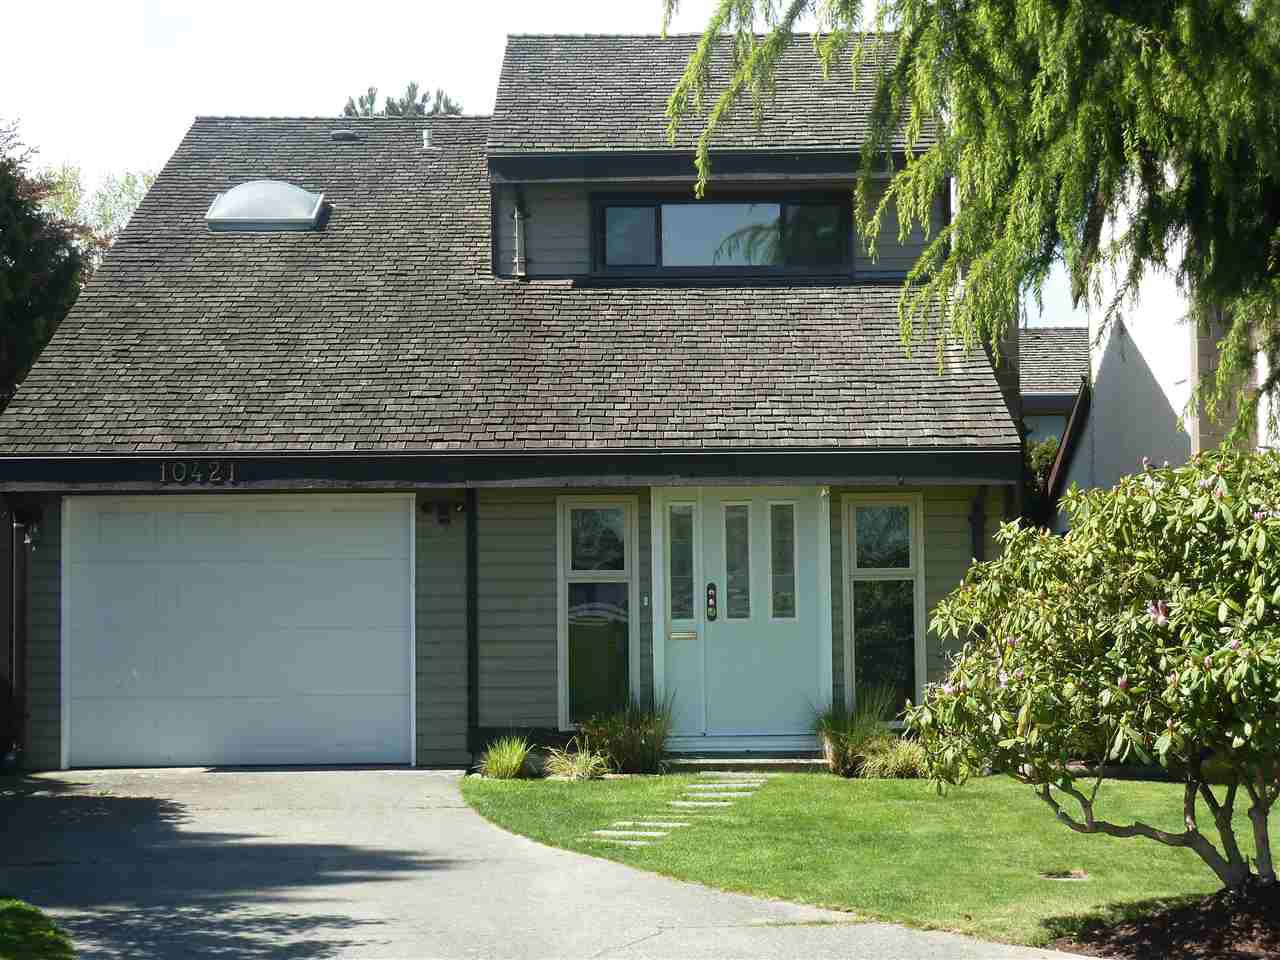 "Main Photo: 10421 HOLLYBANK Drive in Richmond: Steveston North House for sale in ""Hollypark"" : MLS®# R2059991"